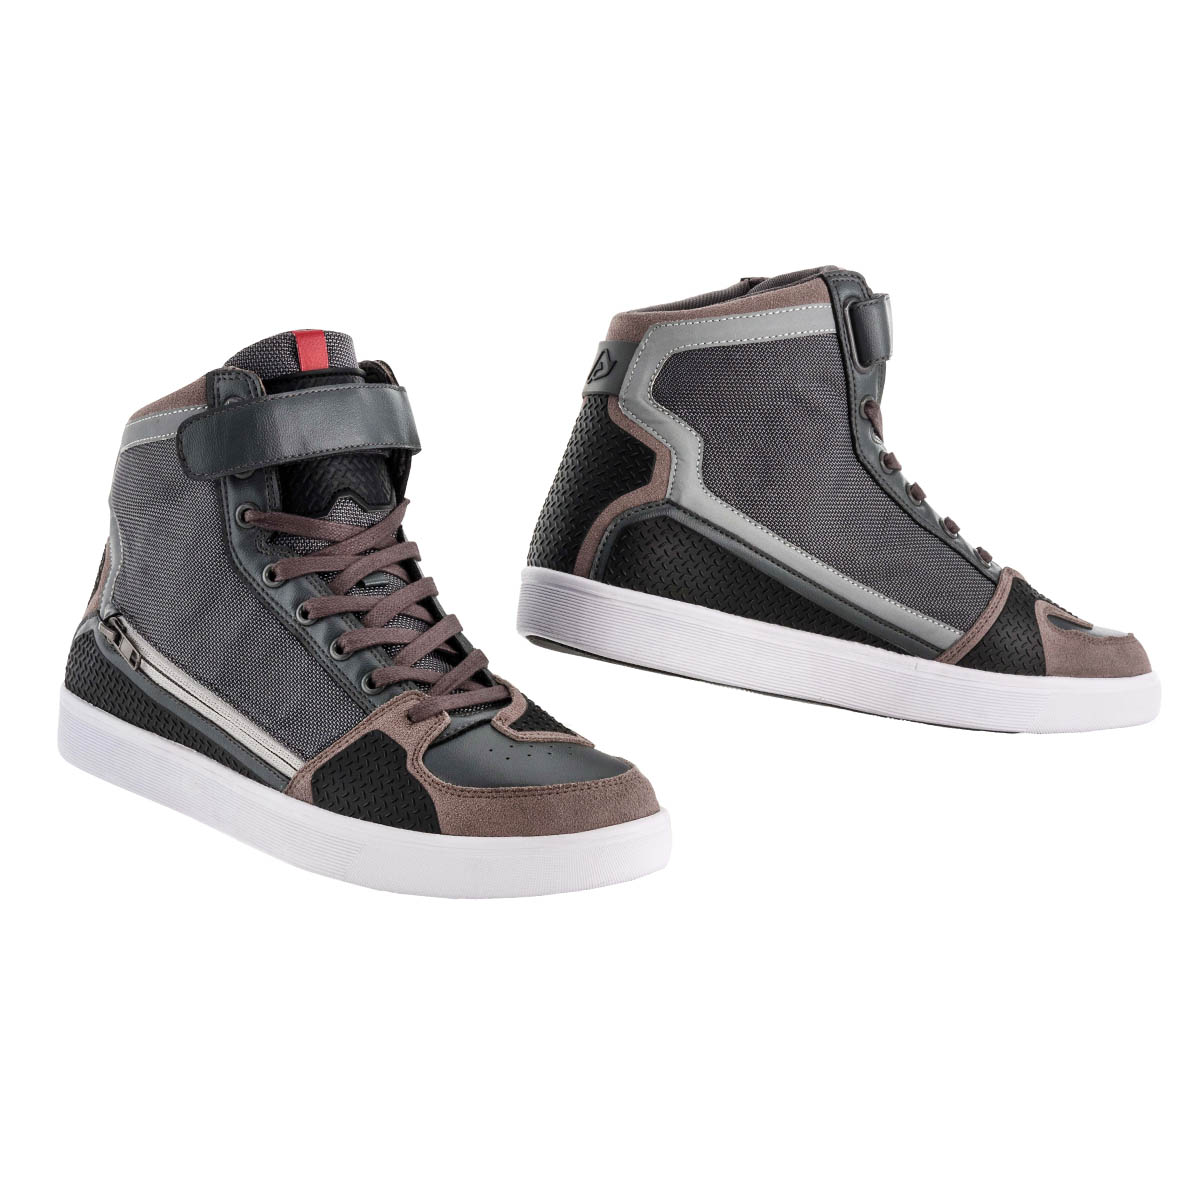 Chaussures Acerbis Key Grey Chaussures Acerbis BEYwnq